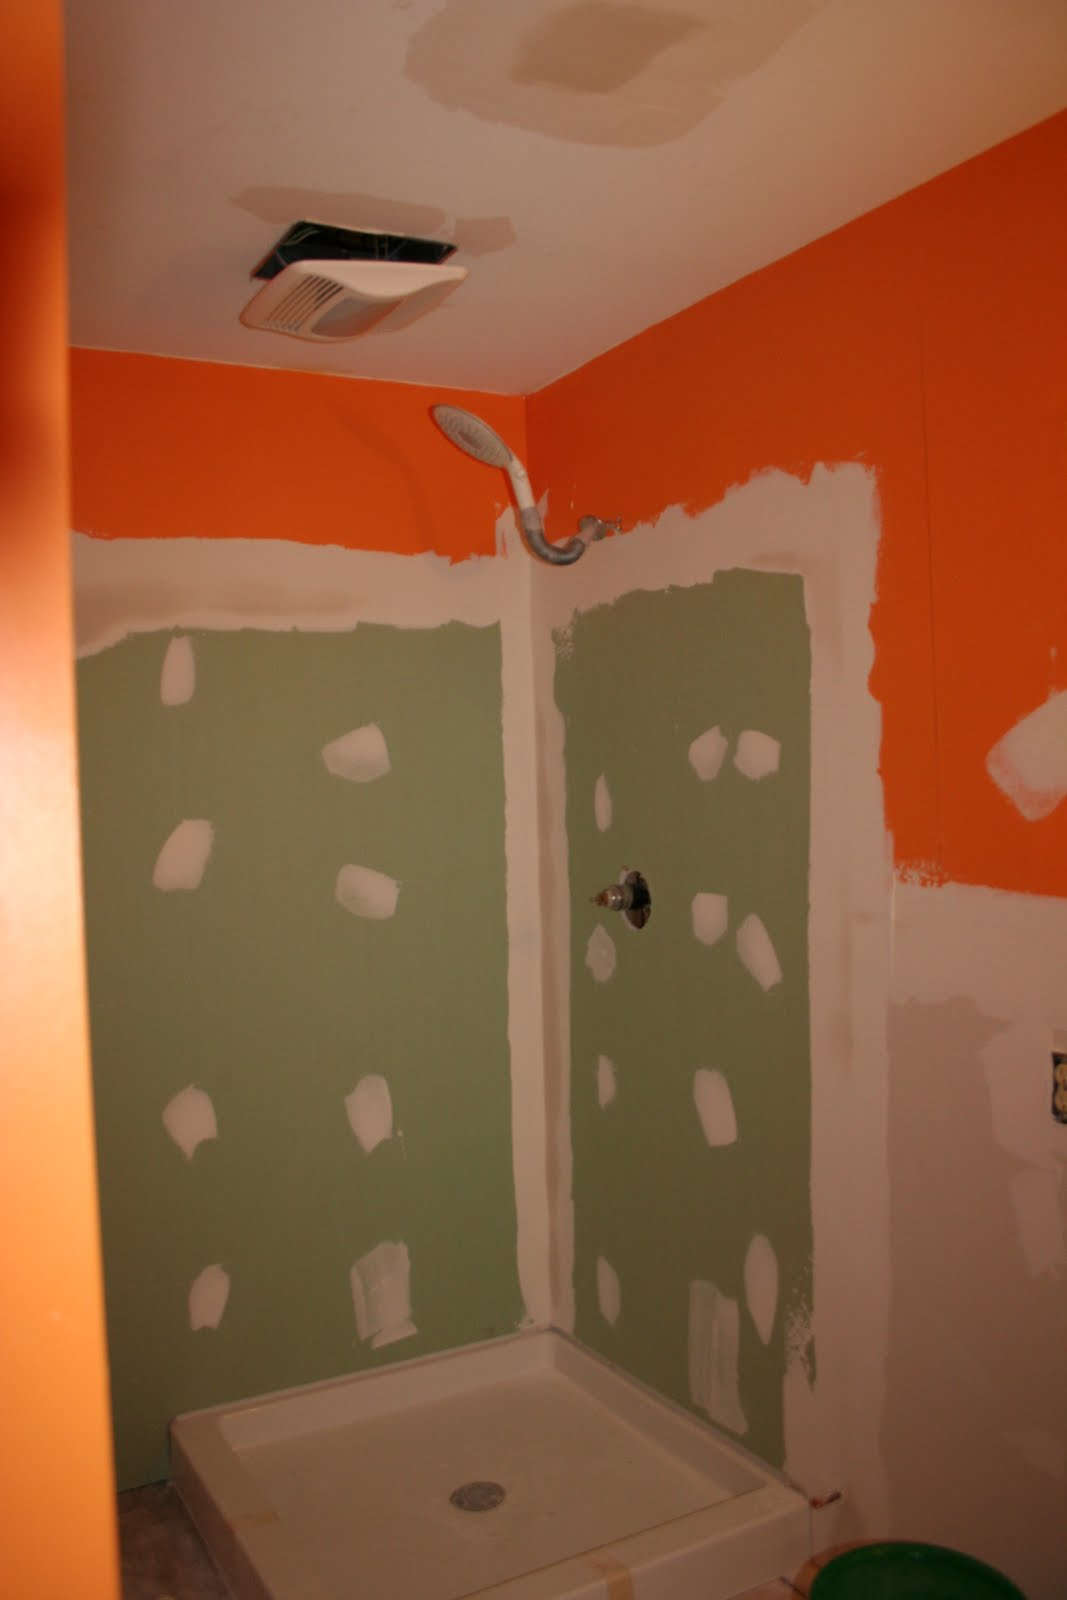 But not the armadillo bathroom remodel drywall day for 2 day bathroom remodel